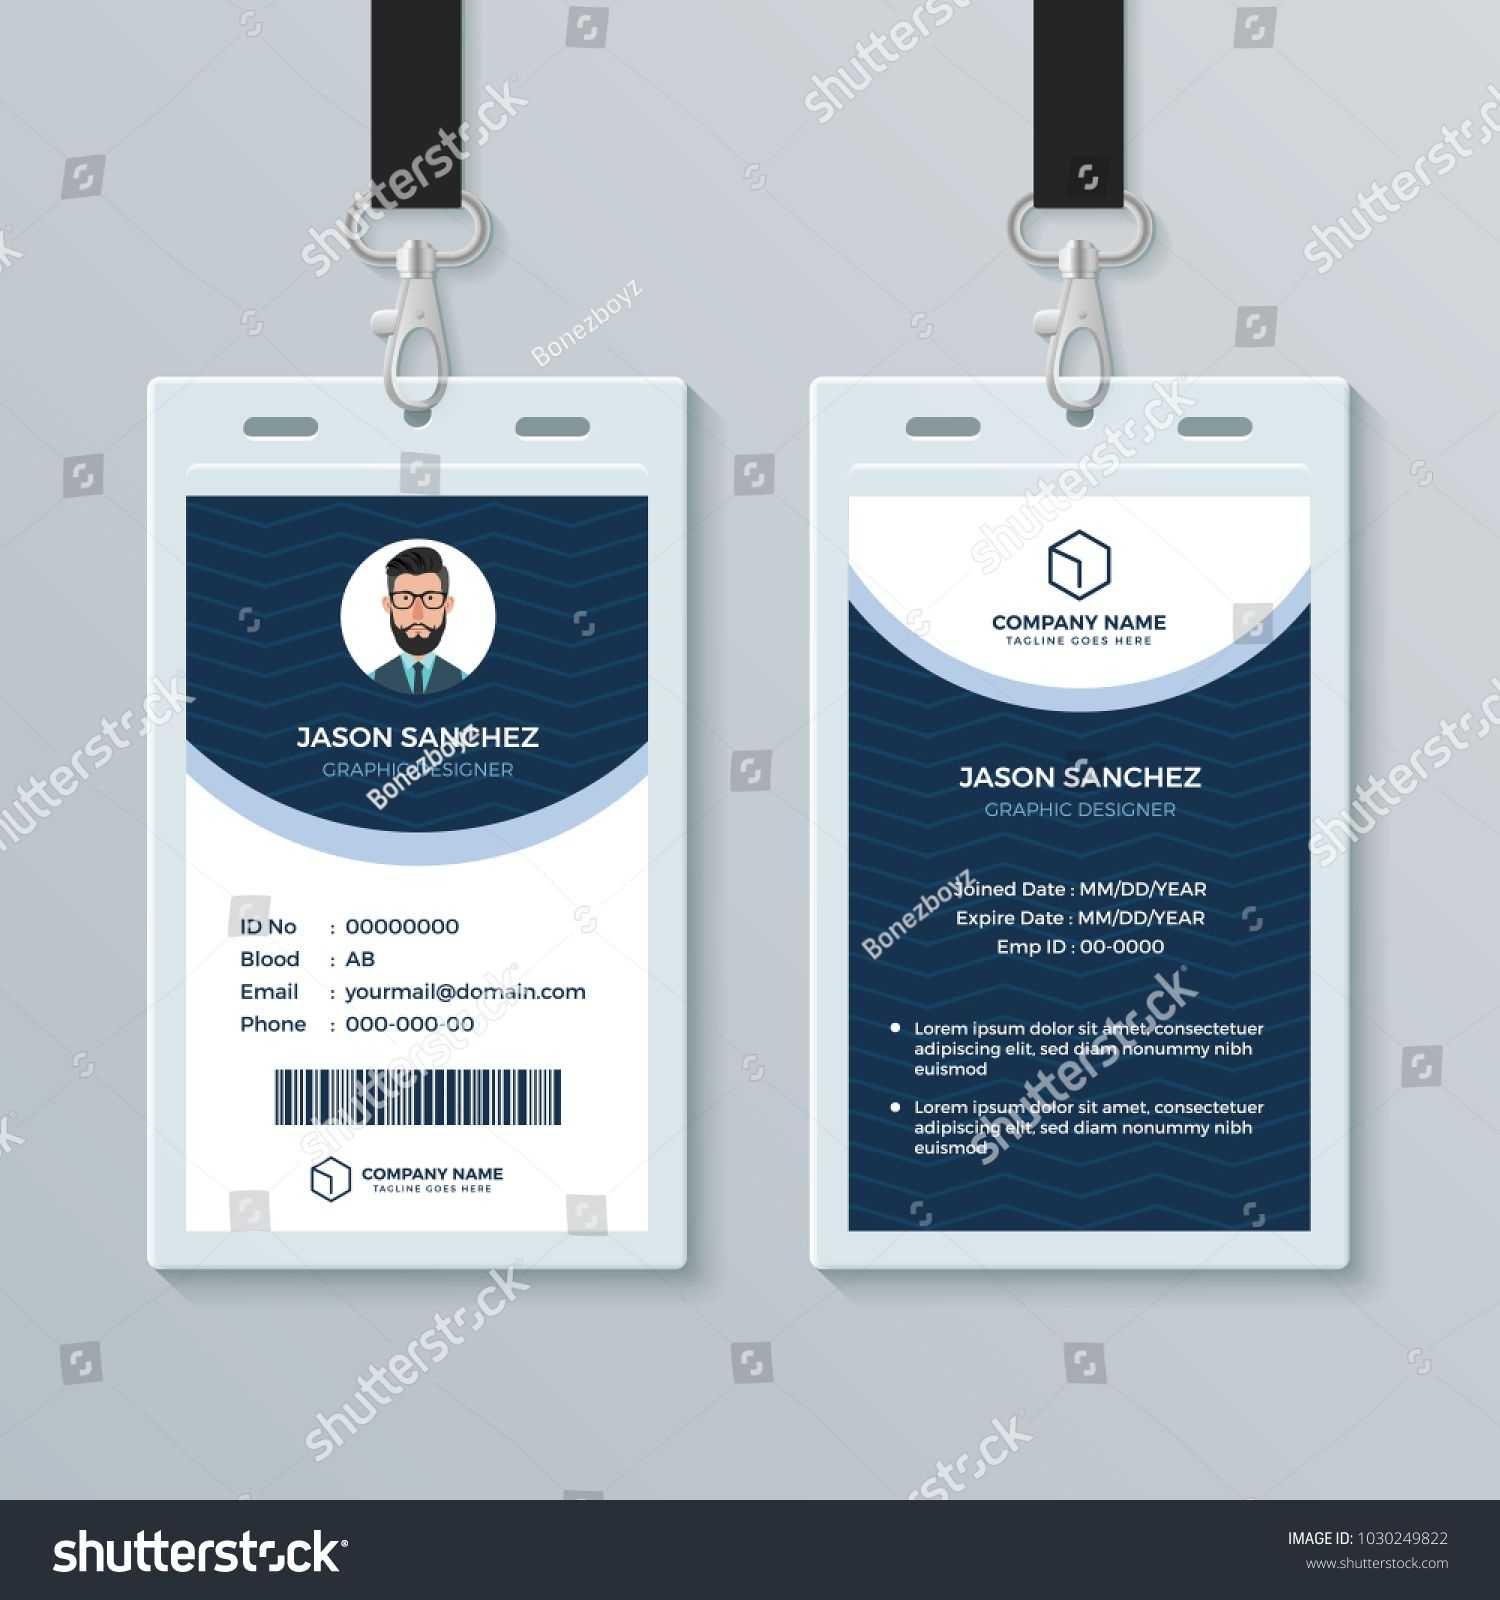 003 Free Id Card Template Fascinating Ideas Photoshop Intended For Free Id Card Template Word